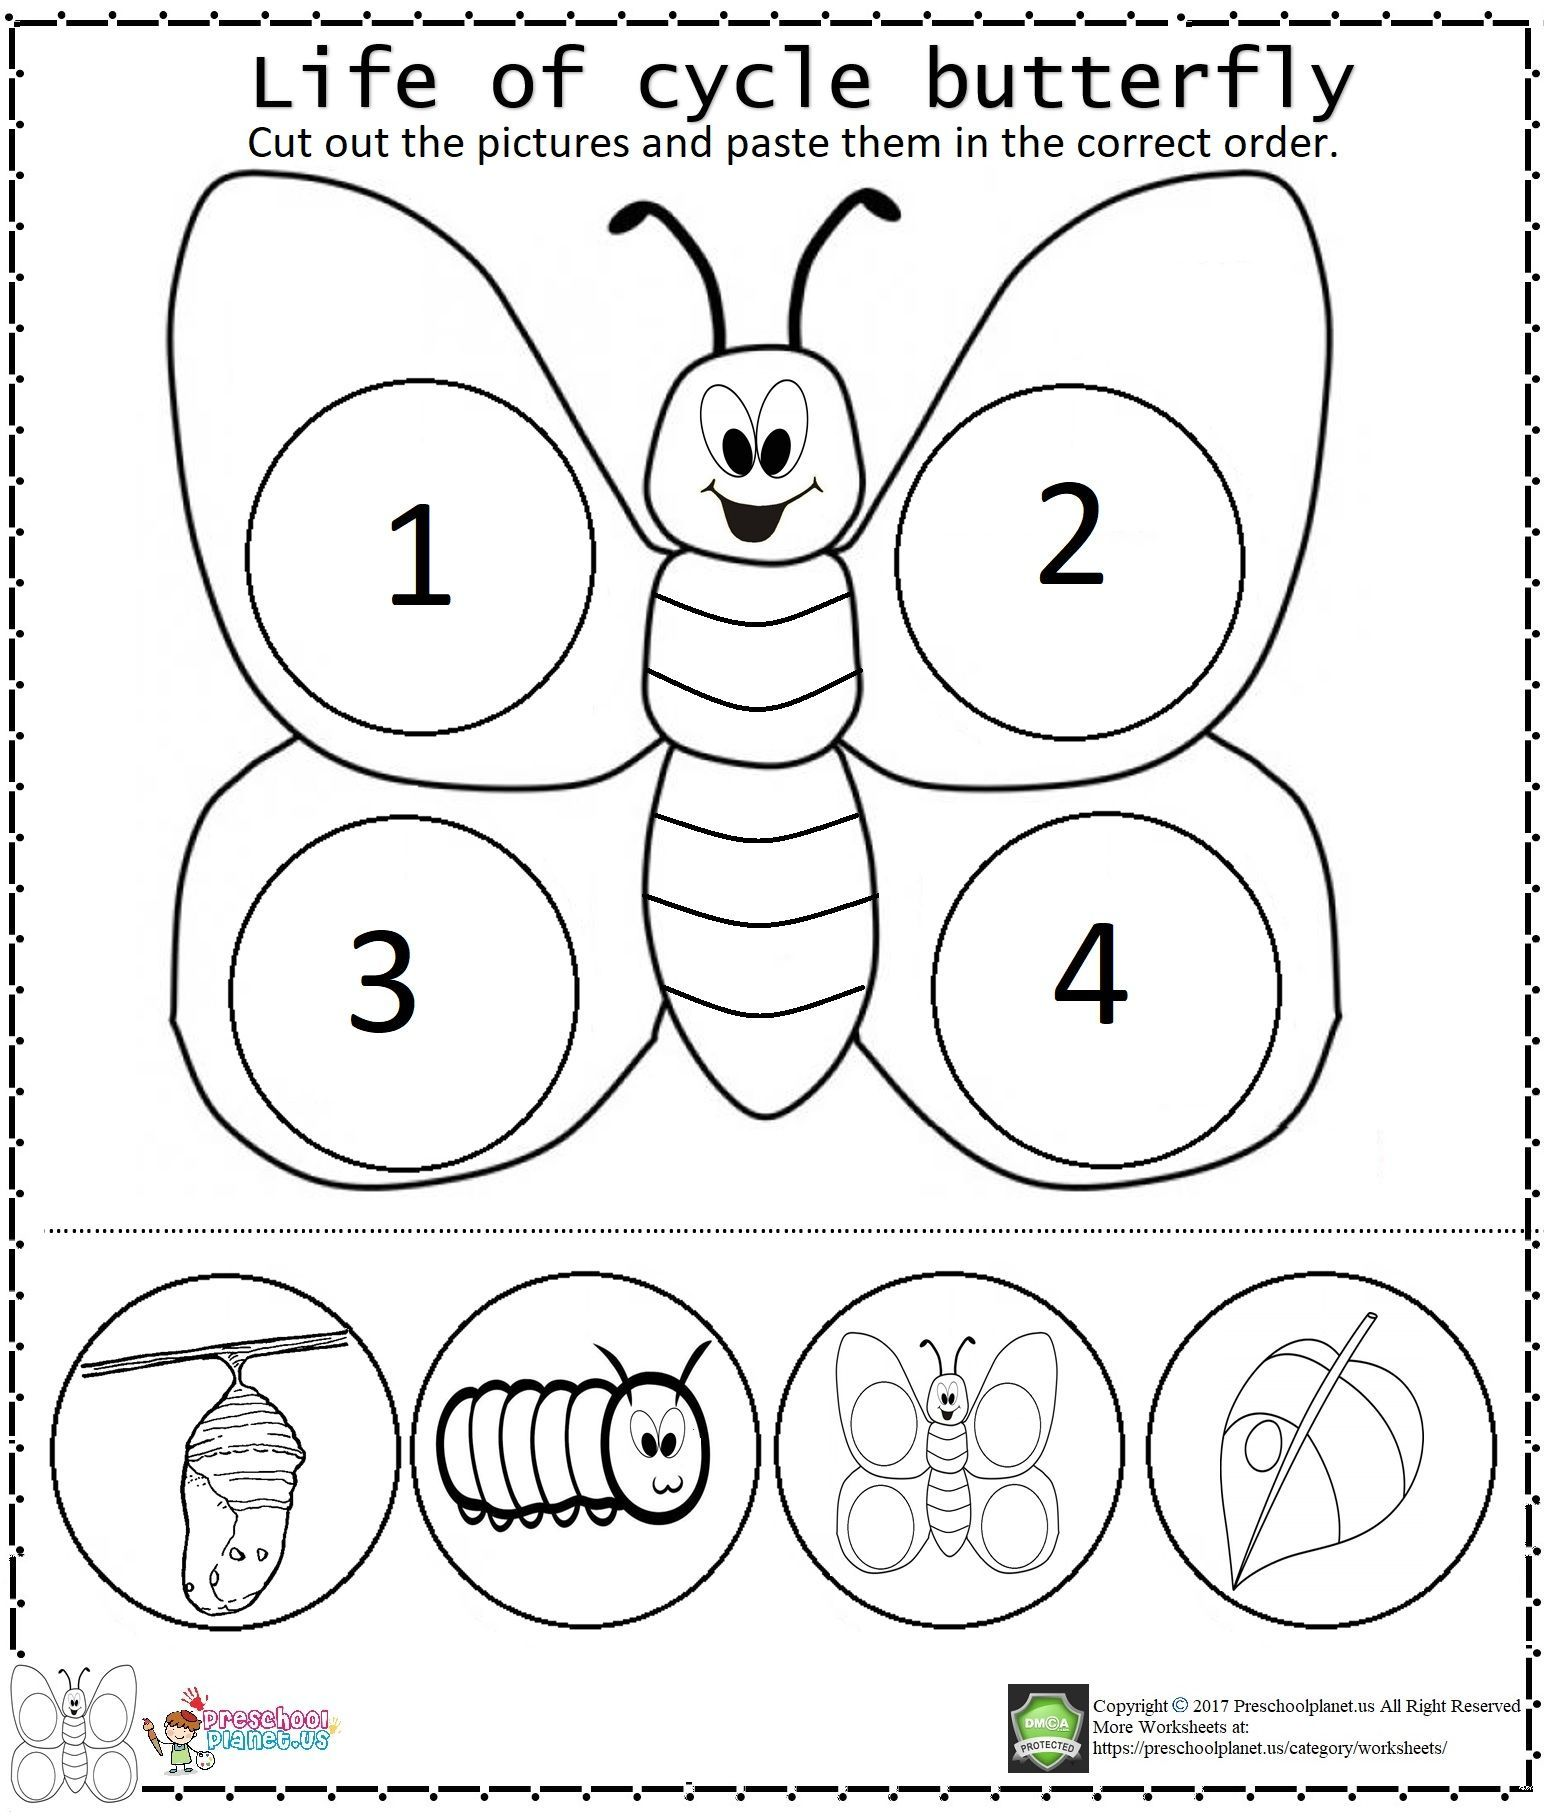 We Prepared A Life Of Cycle Butterfly Worksheet For